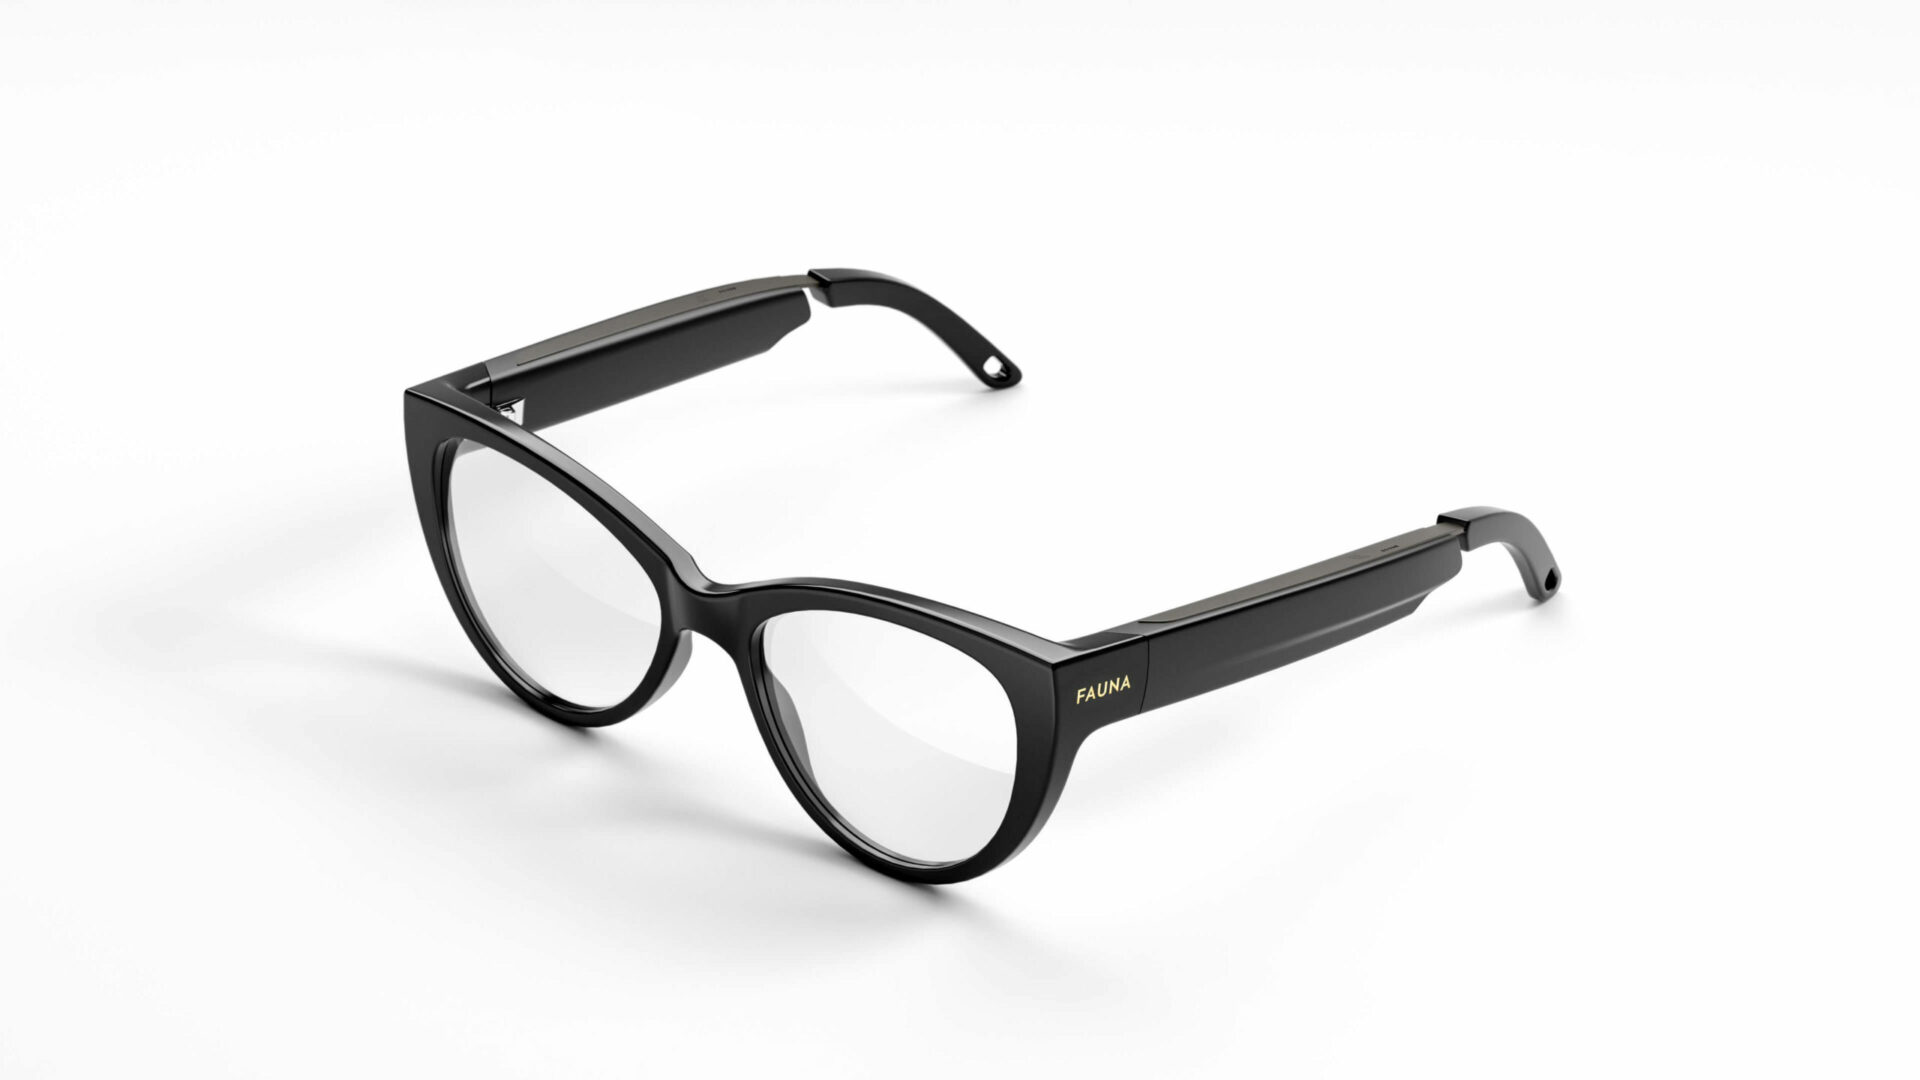 Fauna Levia Black audio glasses